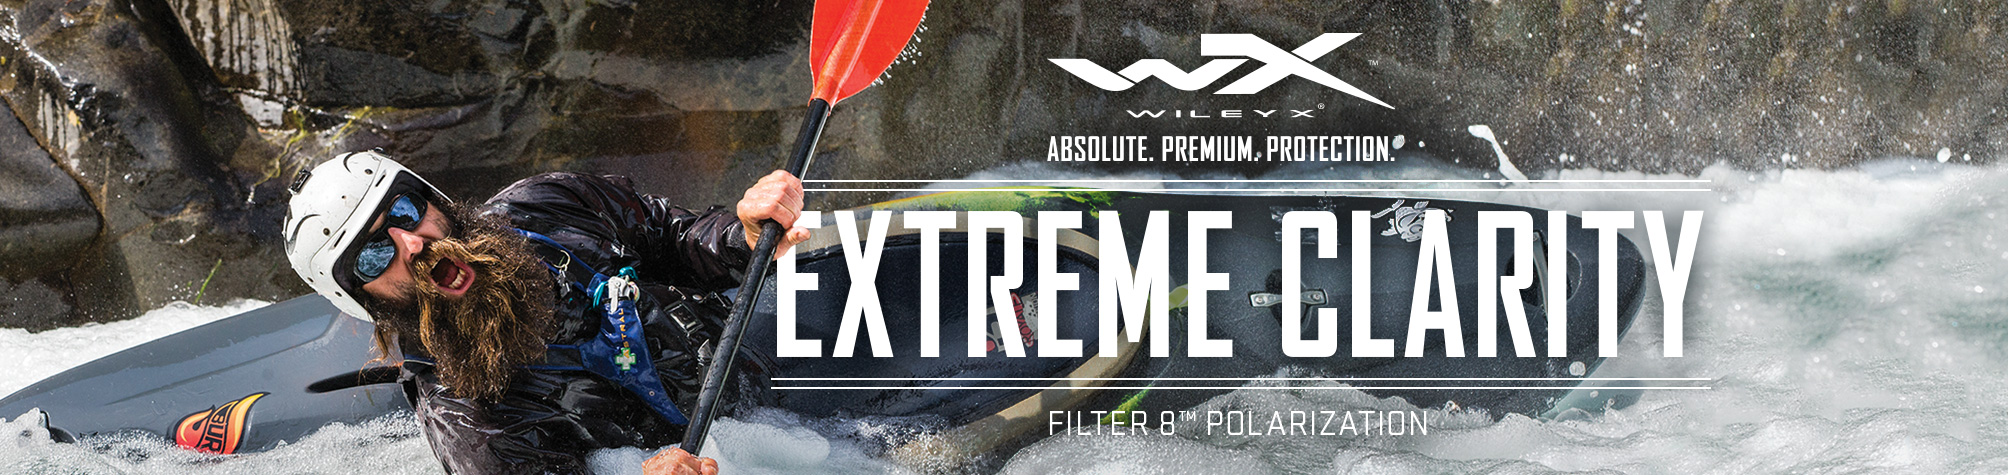 Wiley X Outdoor Extreme Clarity Banner